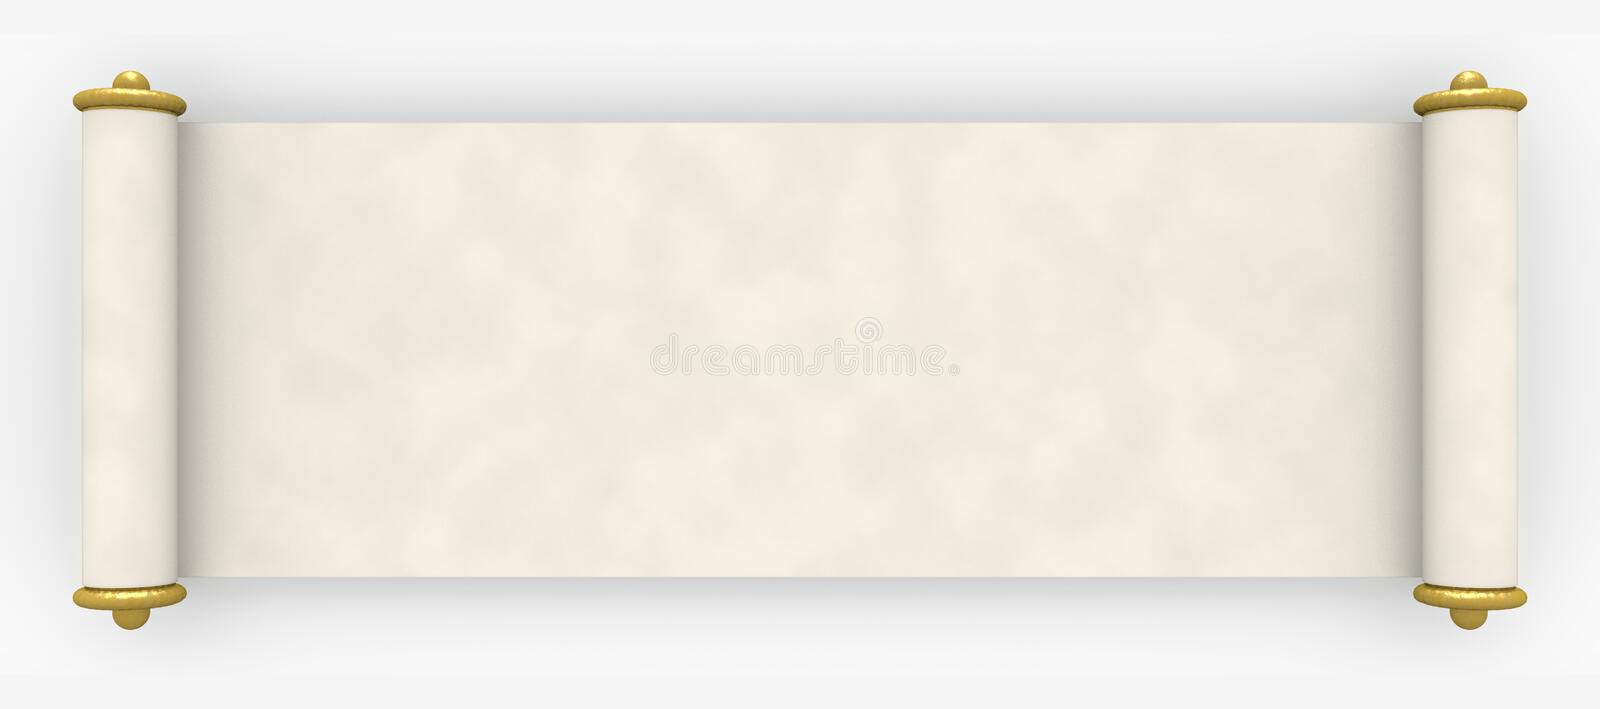 Parchment scroll stock illustration